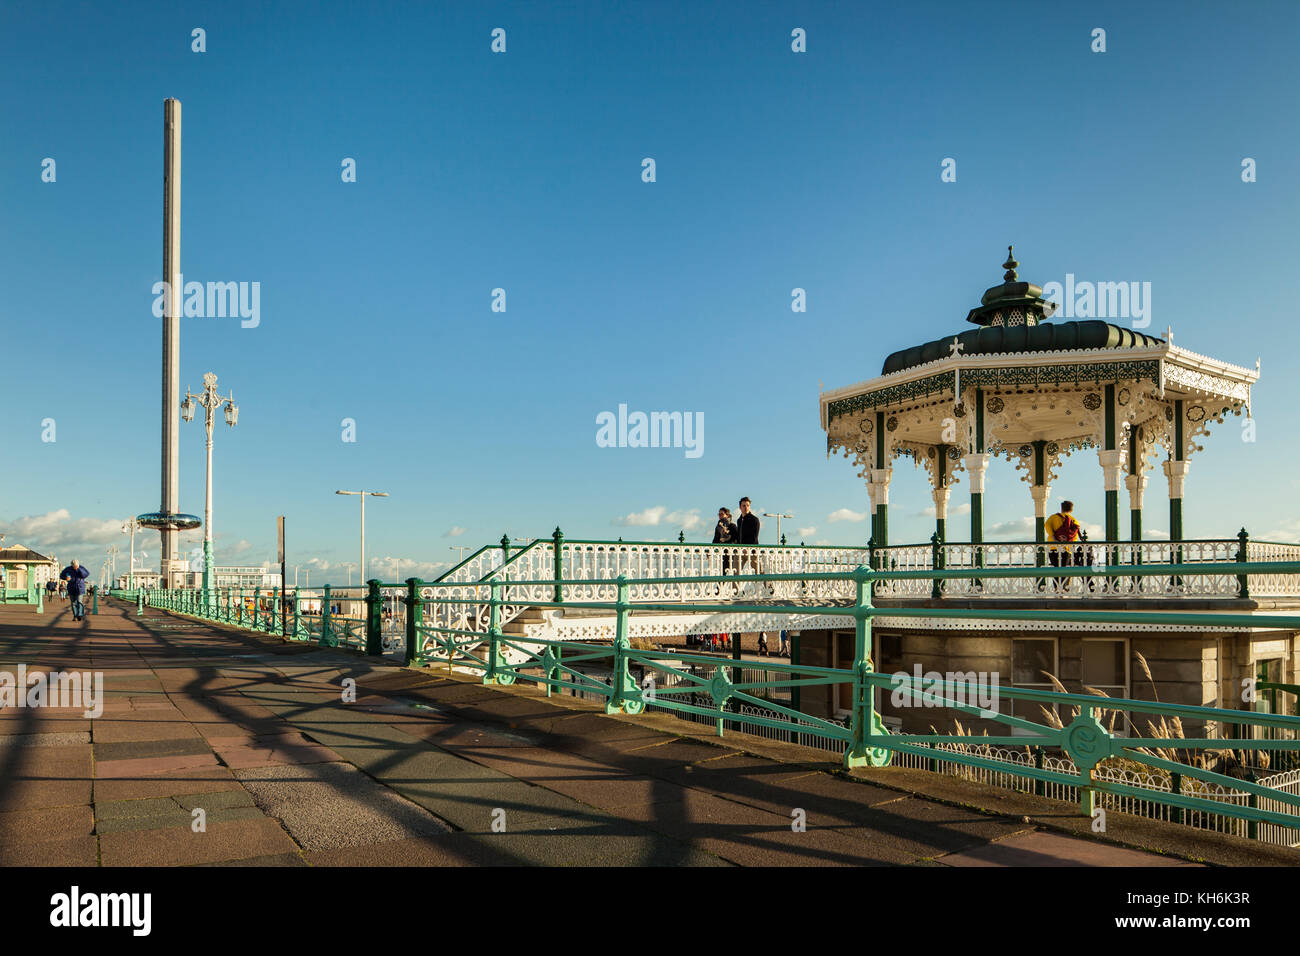 Brighton Bandstand, East Sussex, England. - Stock Image